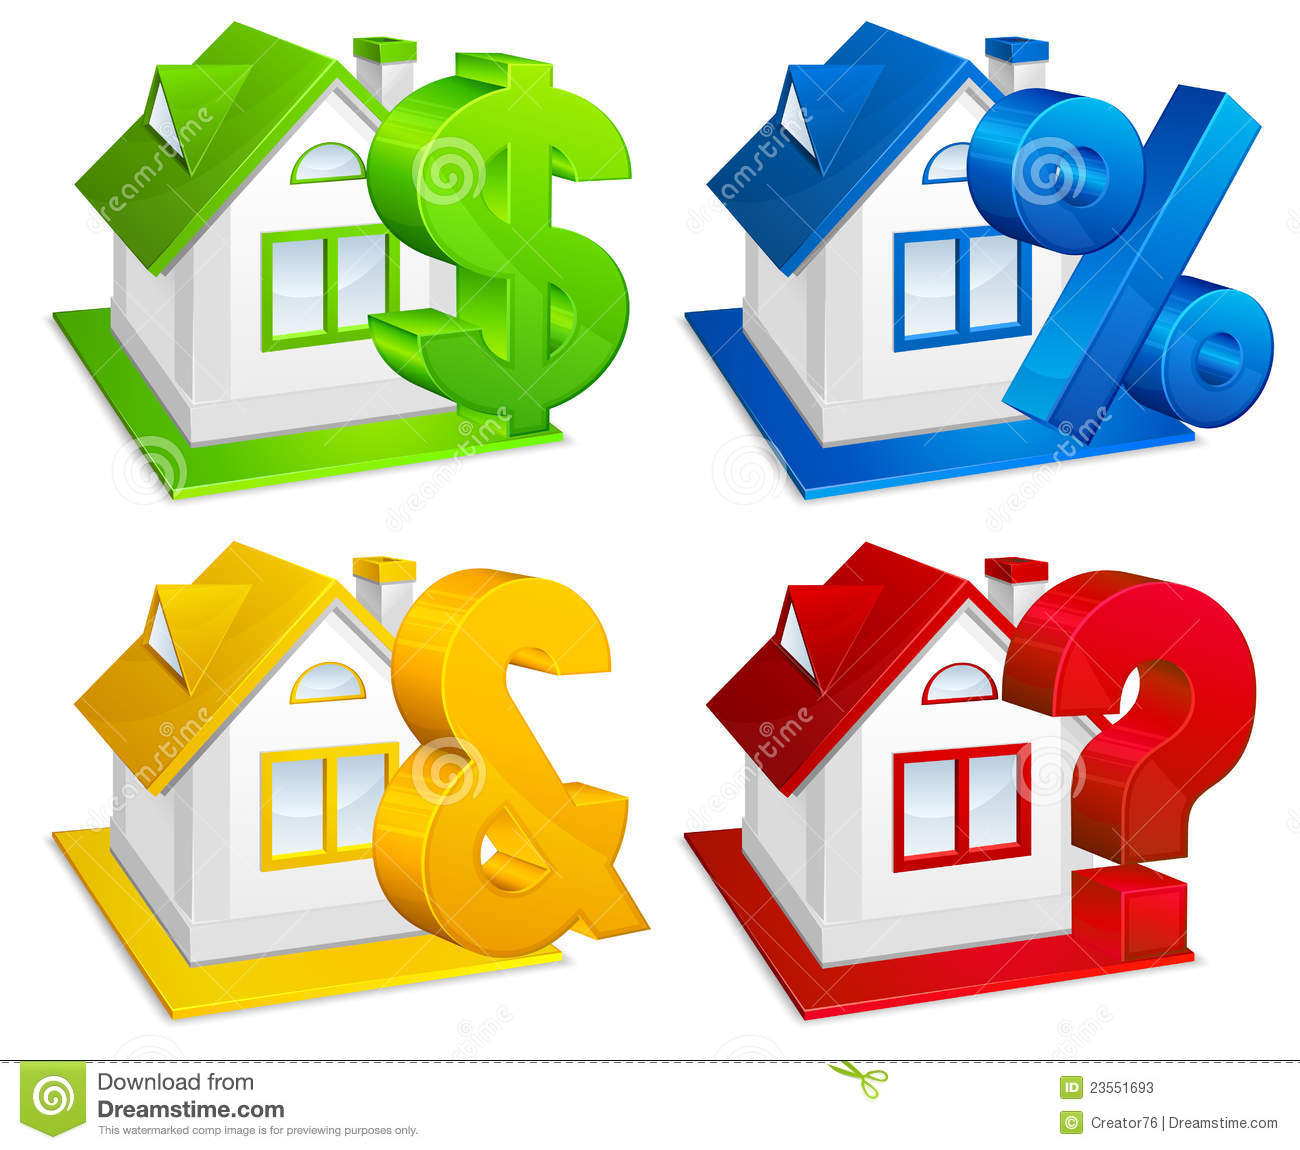 Real estate stock photos image 23551693 for Clipart estate